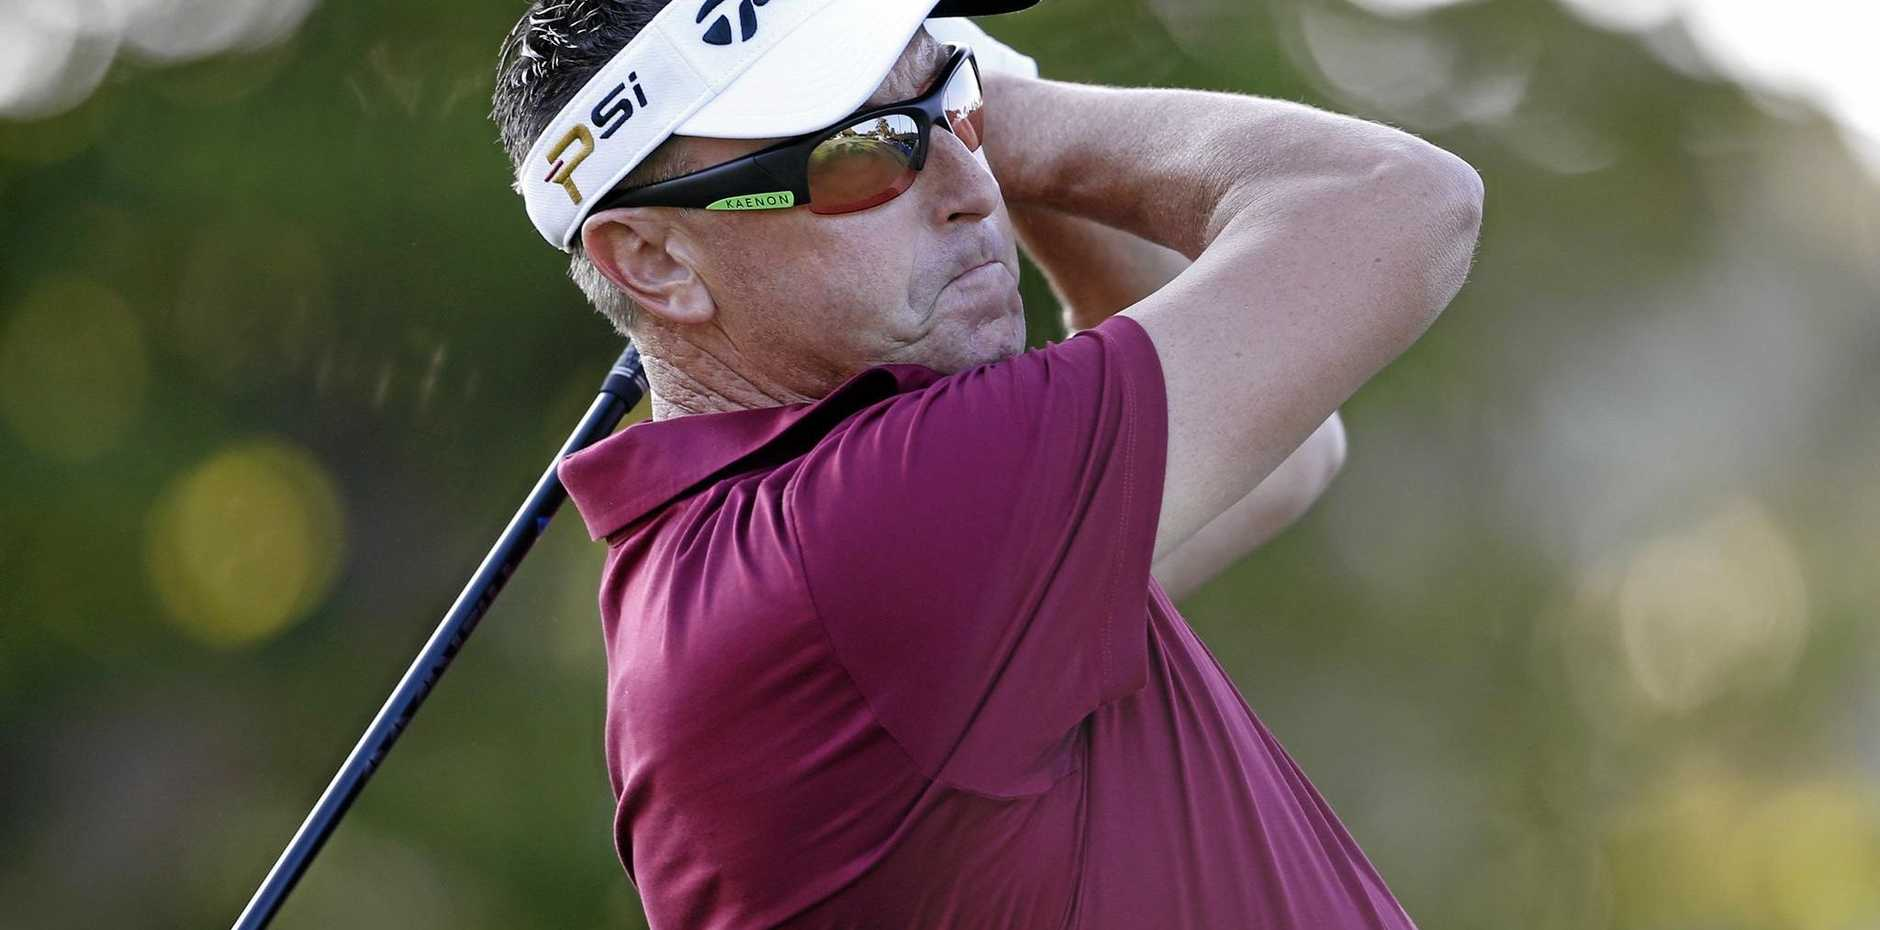 Australia's Robert Allenby hits off the first tee at the Sony Open in Honolulu last year.